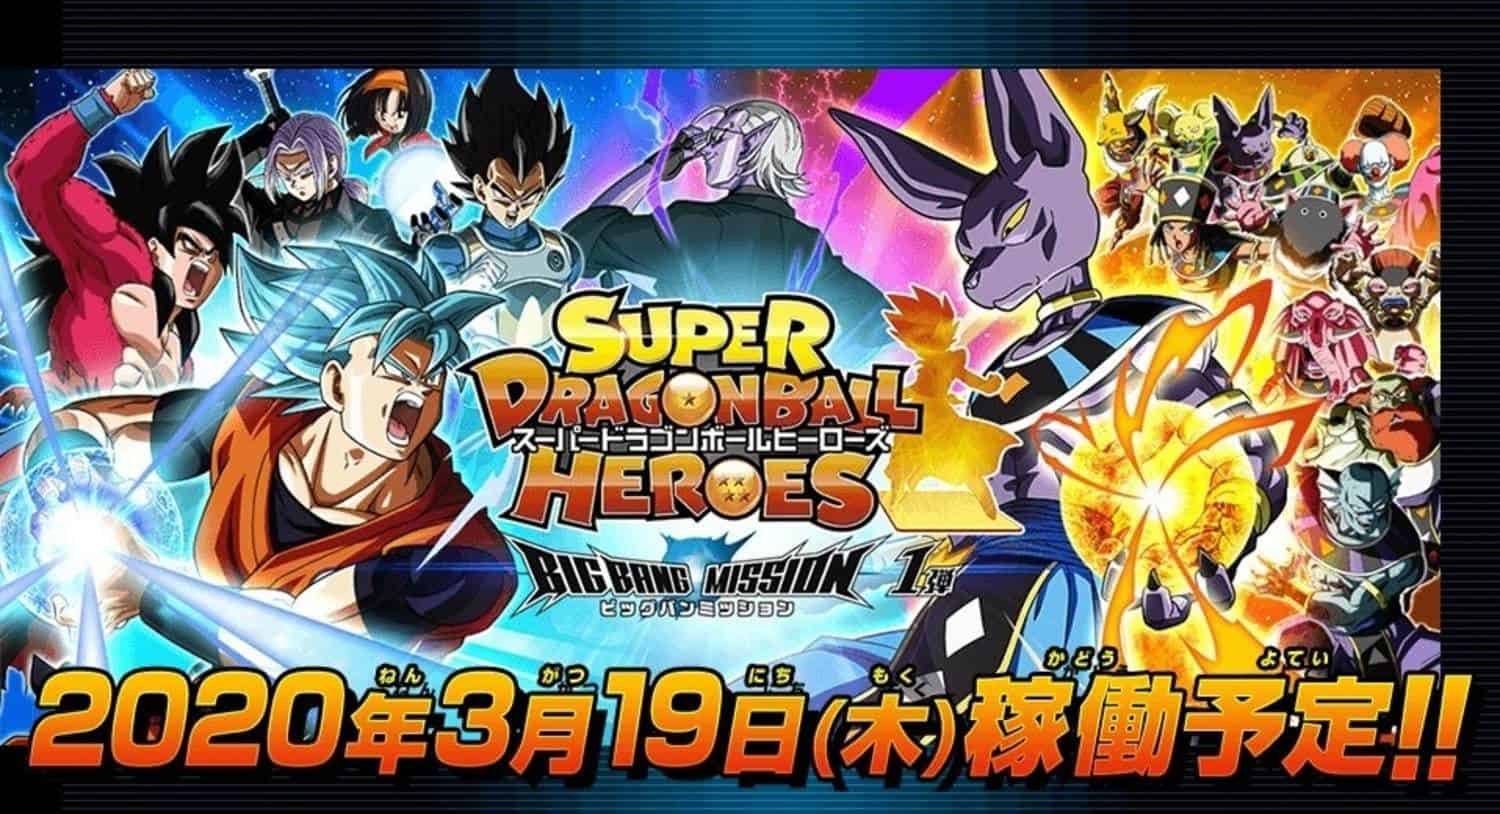 Date de sortie De Dragon Ball Heroes Big Bang Mission Episode 2 22